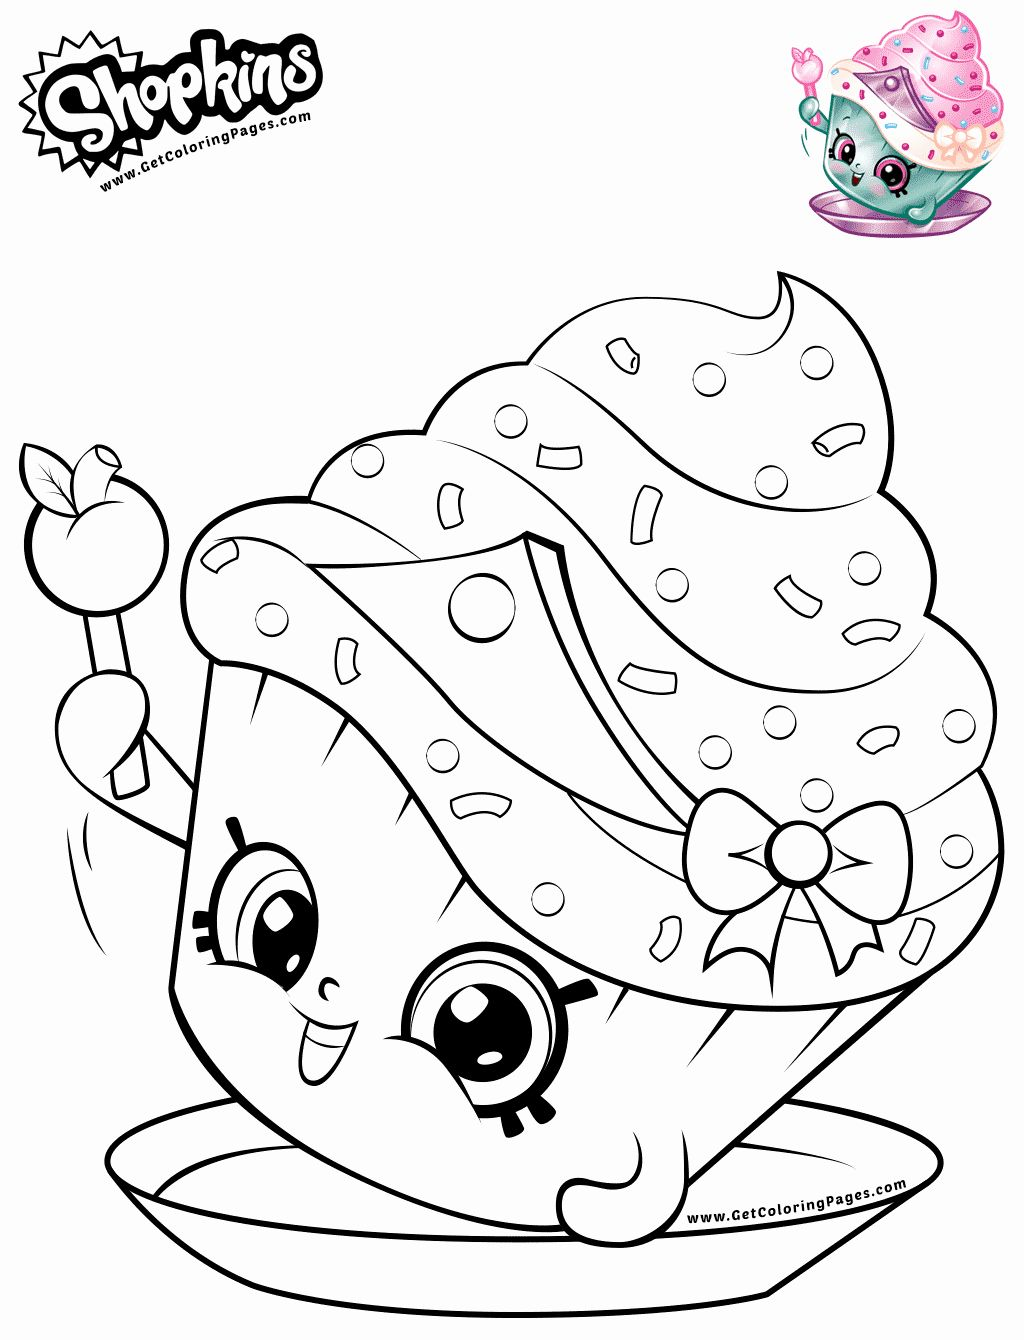 Shopkins Season 3 Coloring Sheets Unique Shopkins Coloring Pages Getcol In 2020 Princess Coloring Pages Shopkins Colouring Pages Shopkins Coloring Pages Free Printable